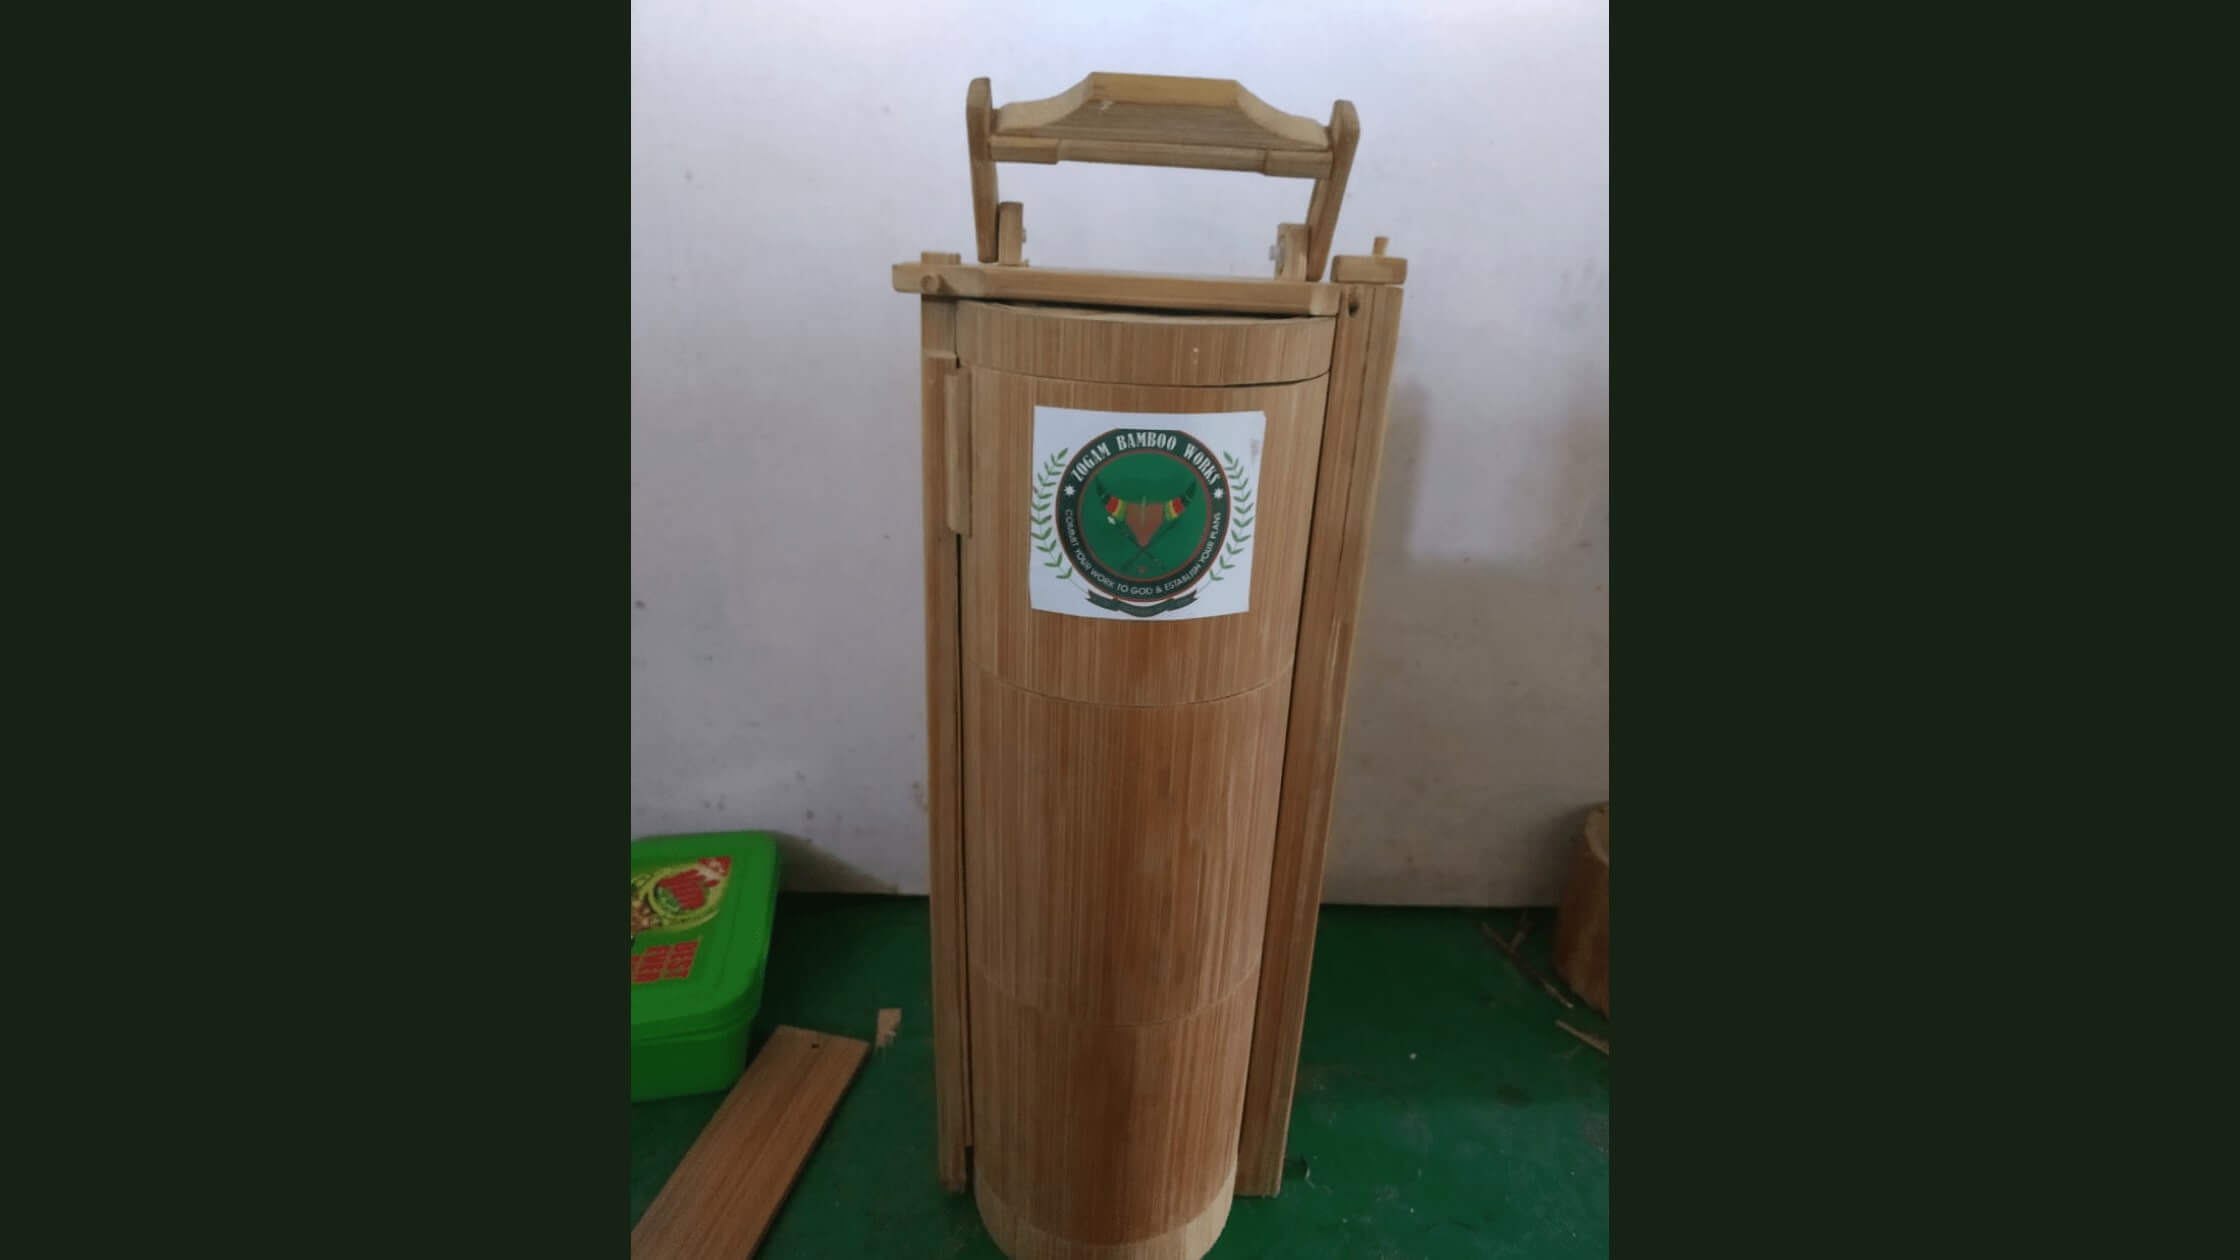 Manipur Startup Zogam Bamboo making Eco-friendly Tiffin Boxes